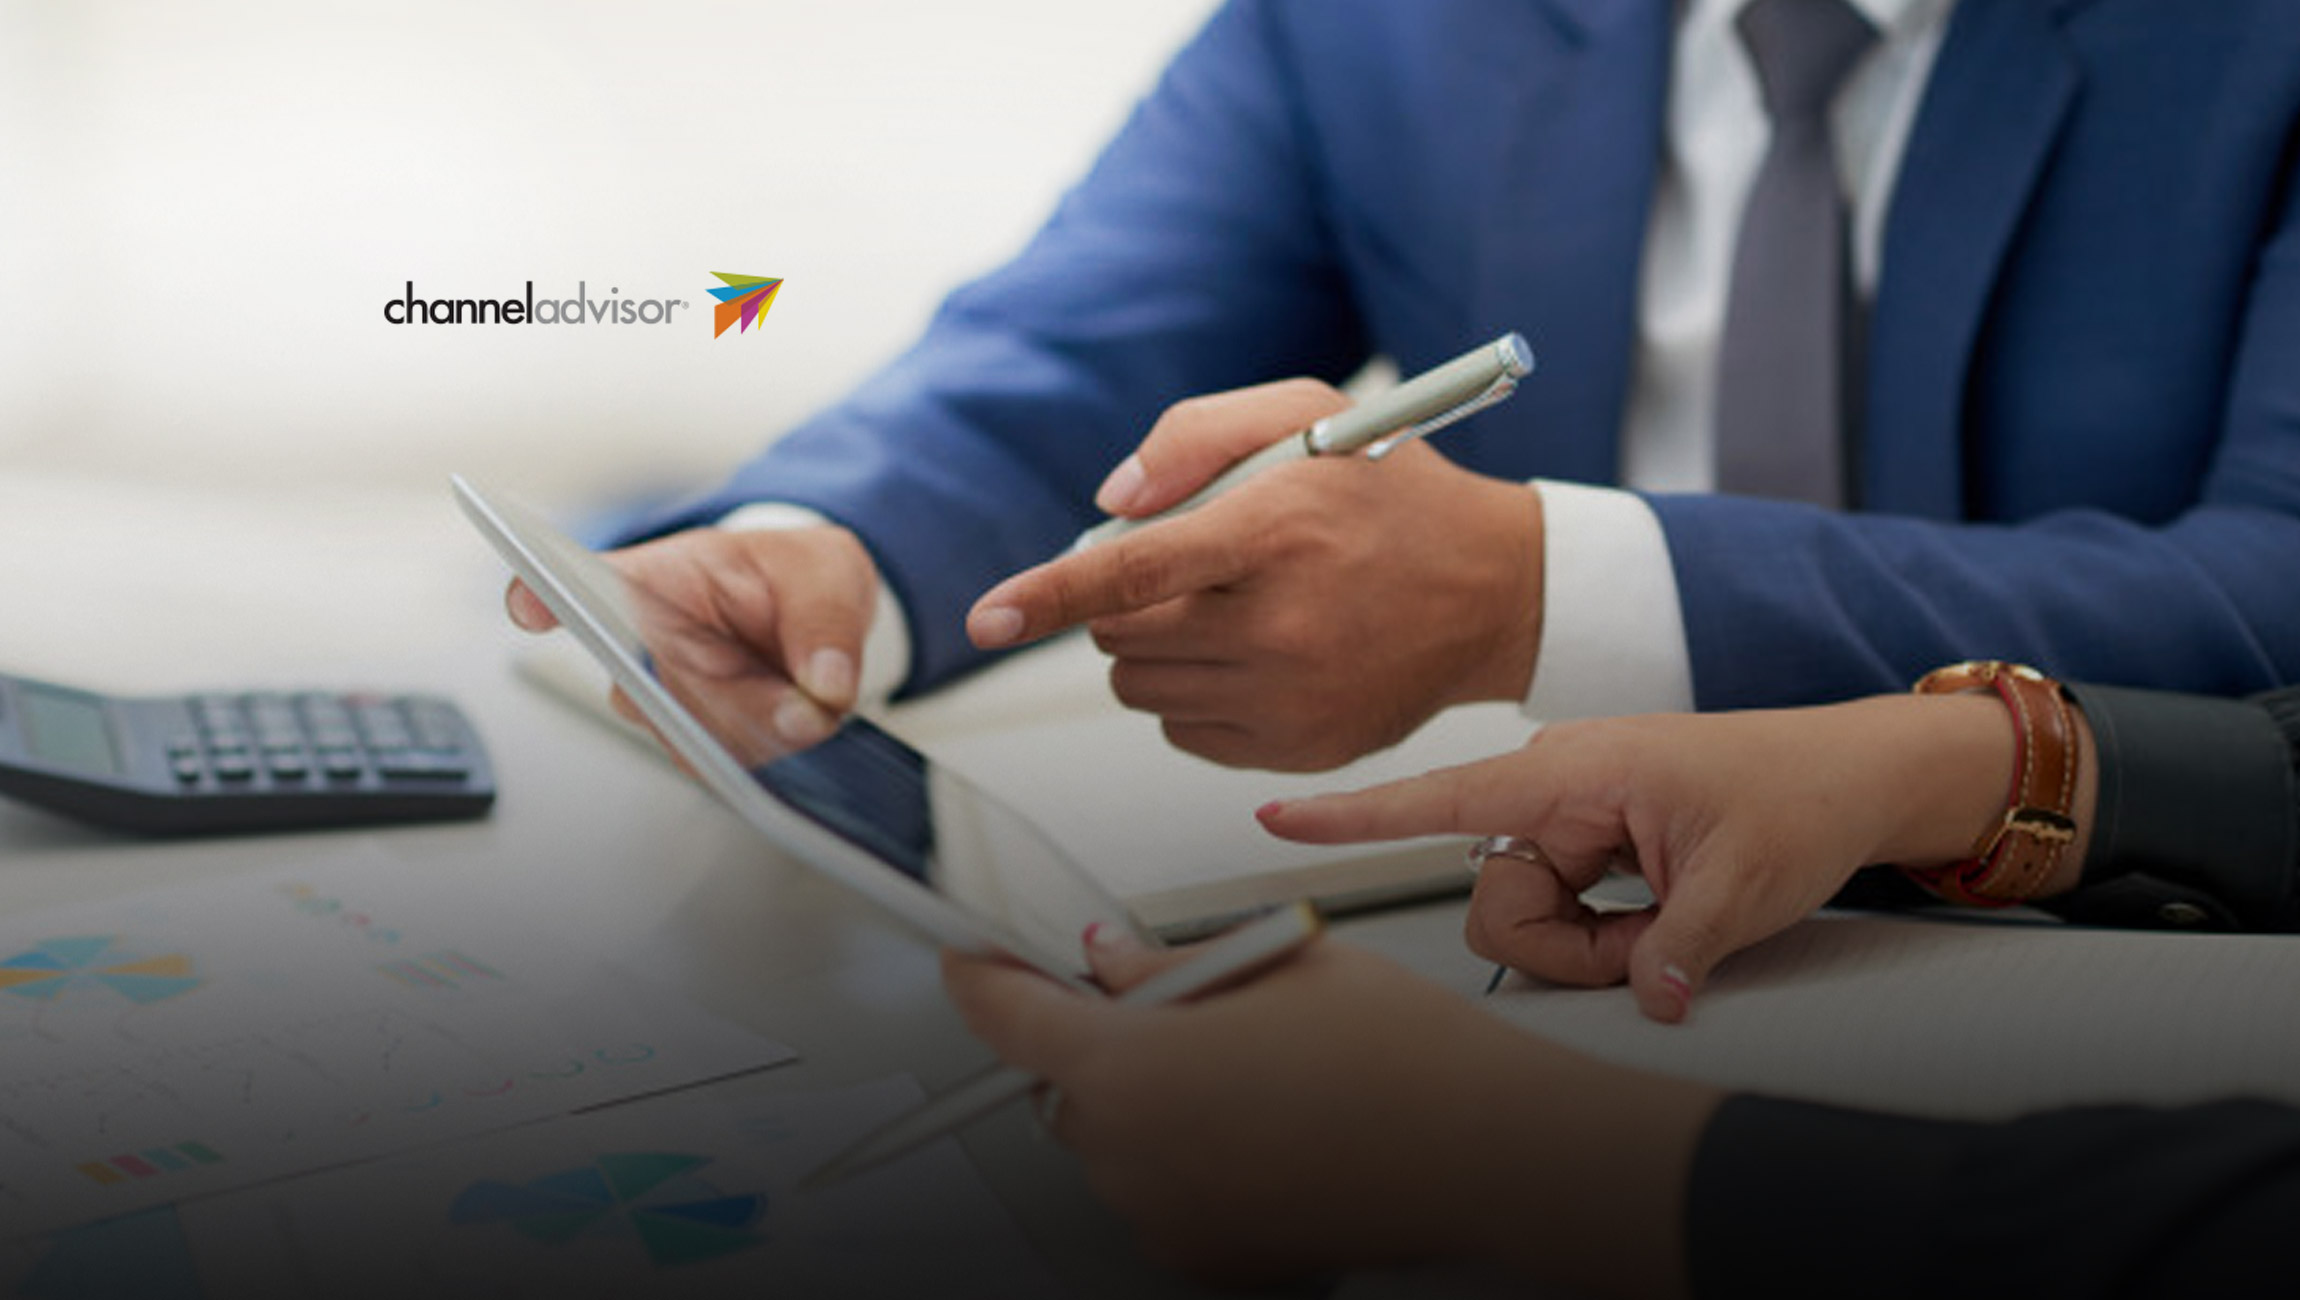 ChannelAdvisor Reports Third Quarter 2020 Results; Revenue and Adjusted EBITDA Exceed Guidance